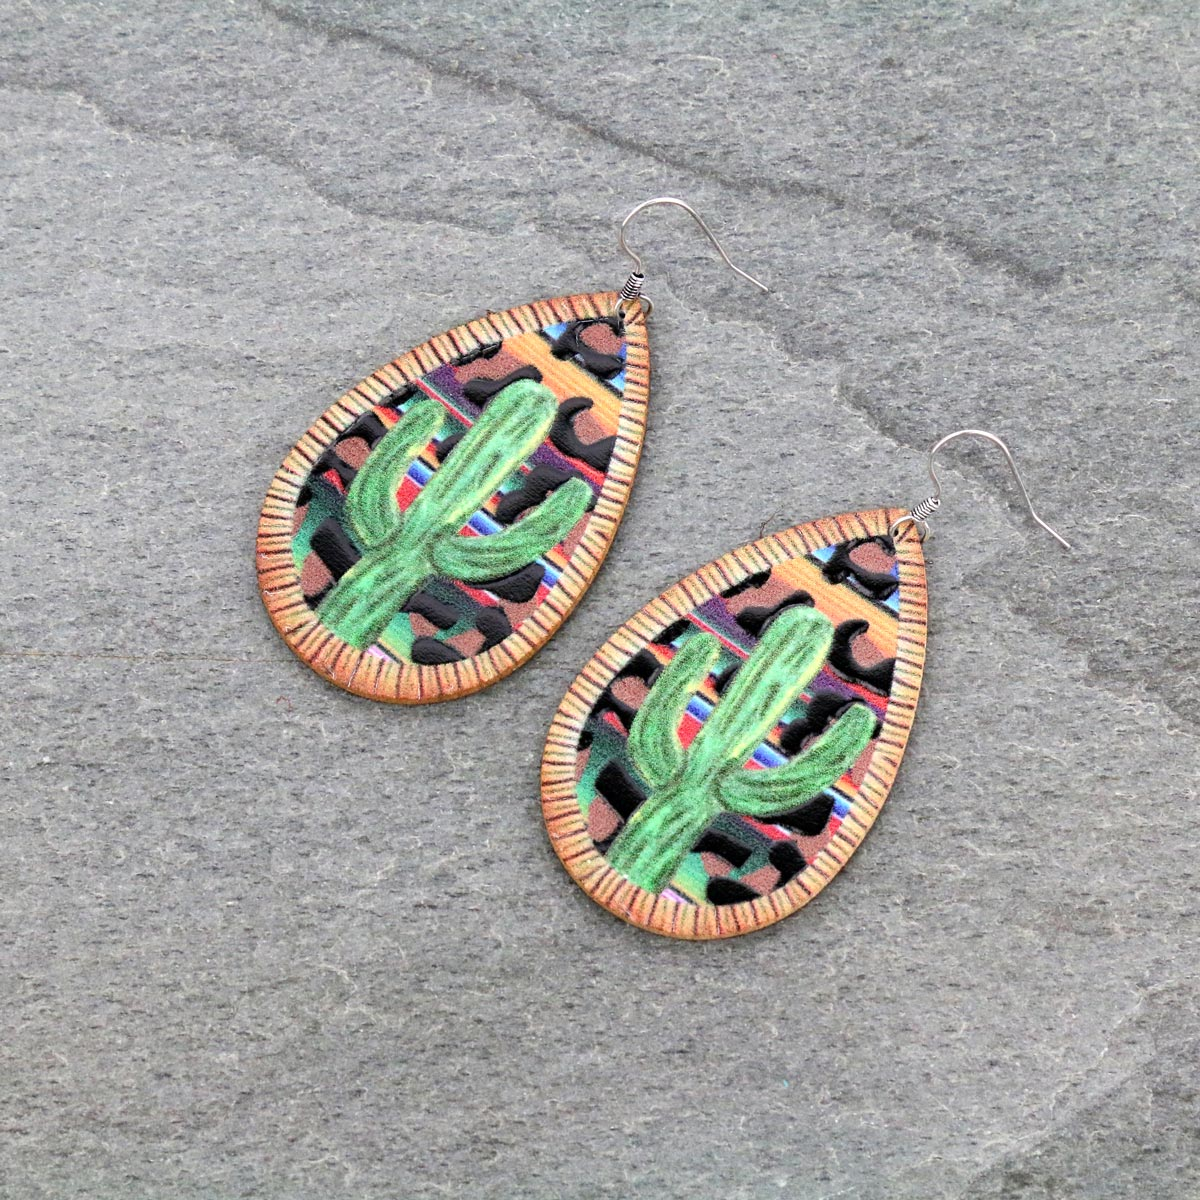 Genuine Leather Cactus Print Teardrop Fish Hook Earrings-ER0993/SE